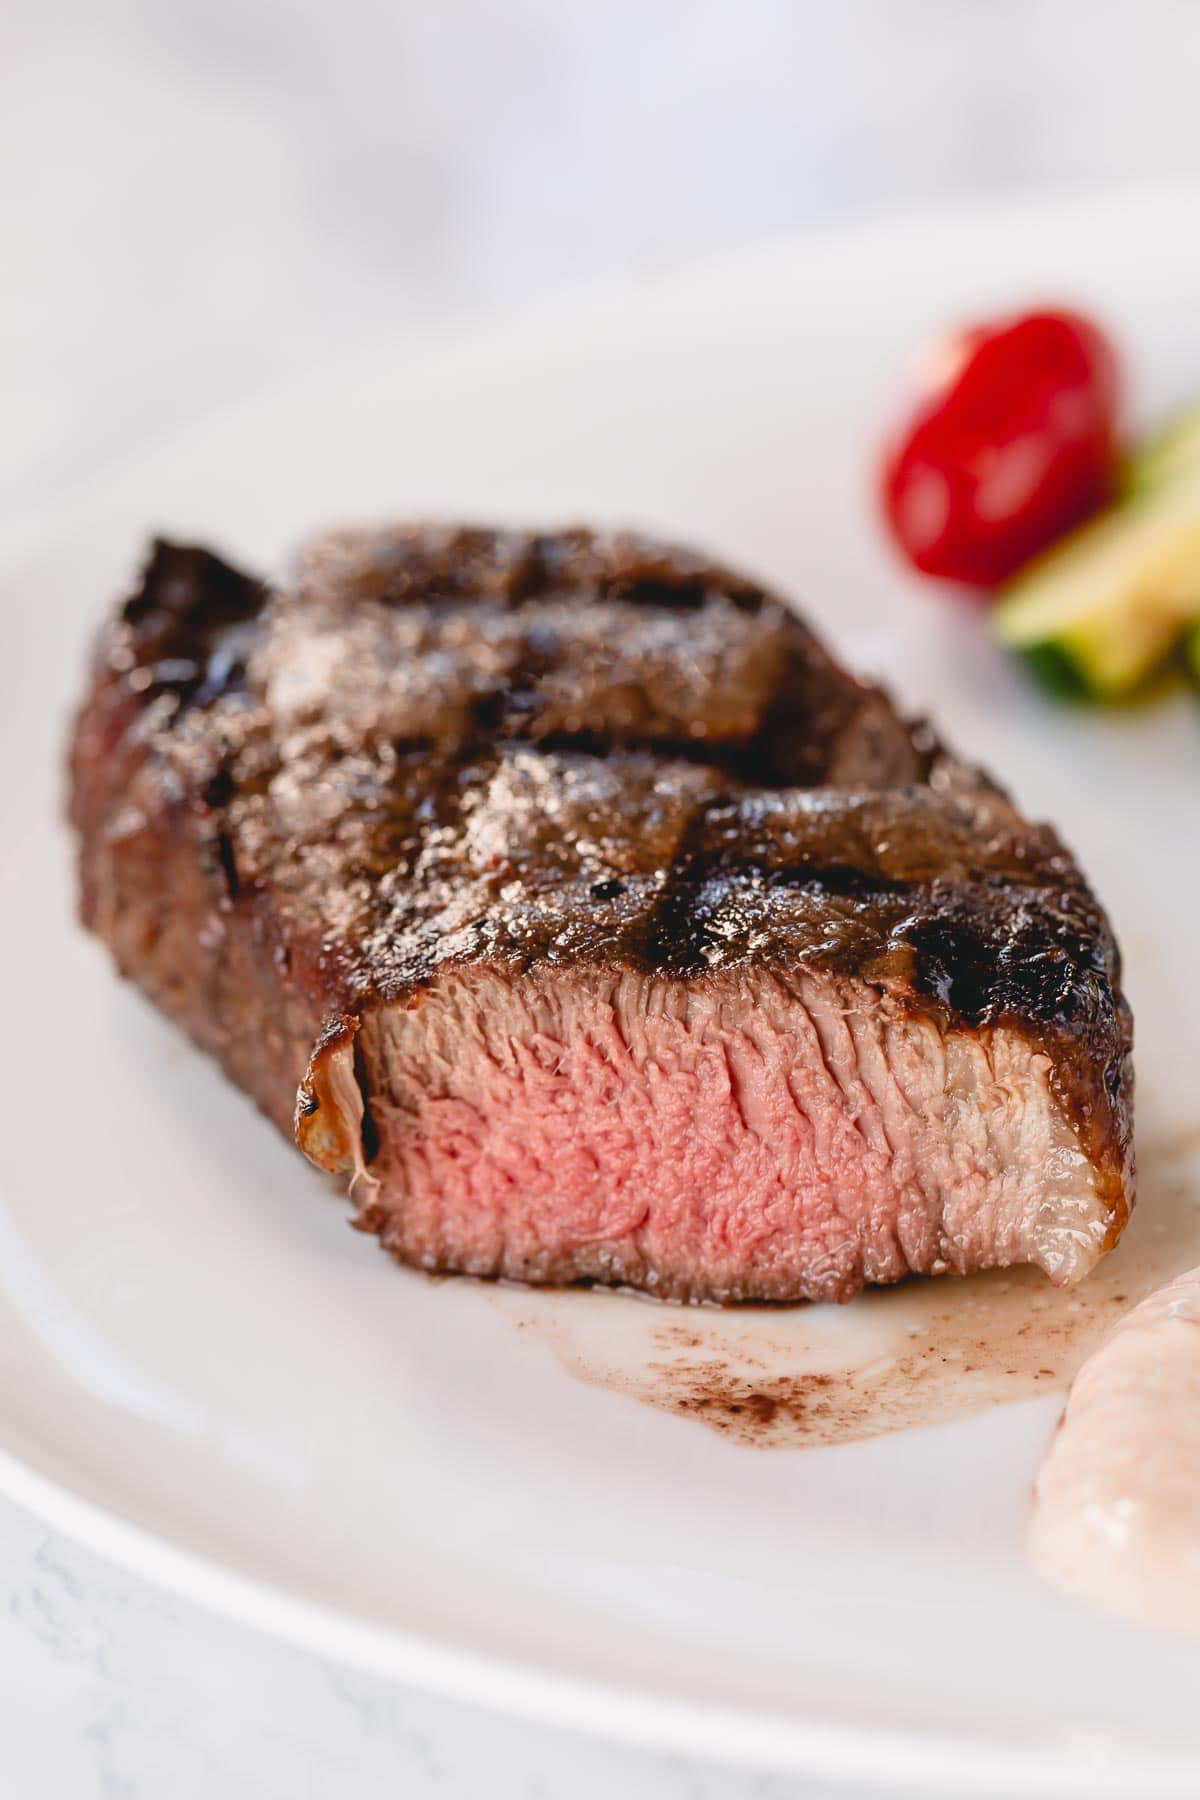 Grilled filet mignon on a white plate with a slice cut.